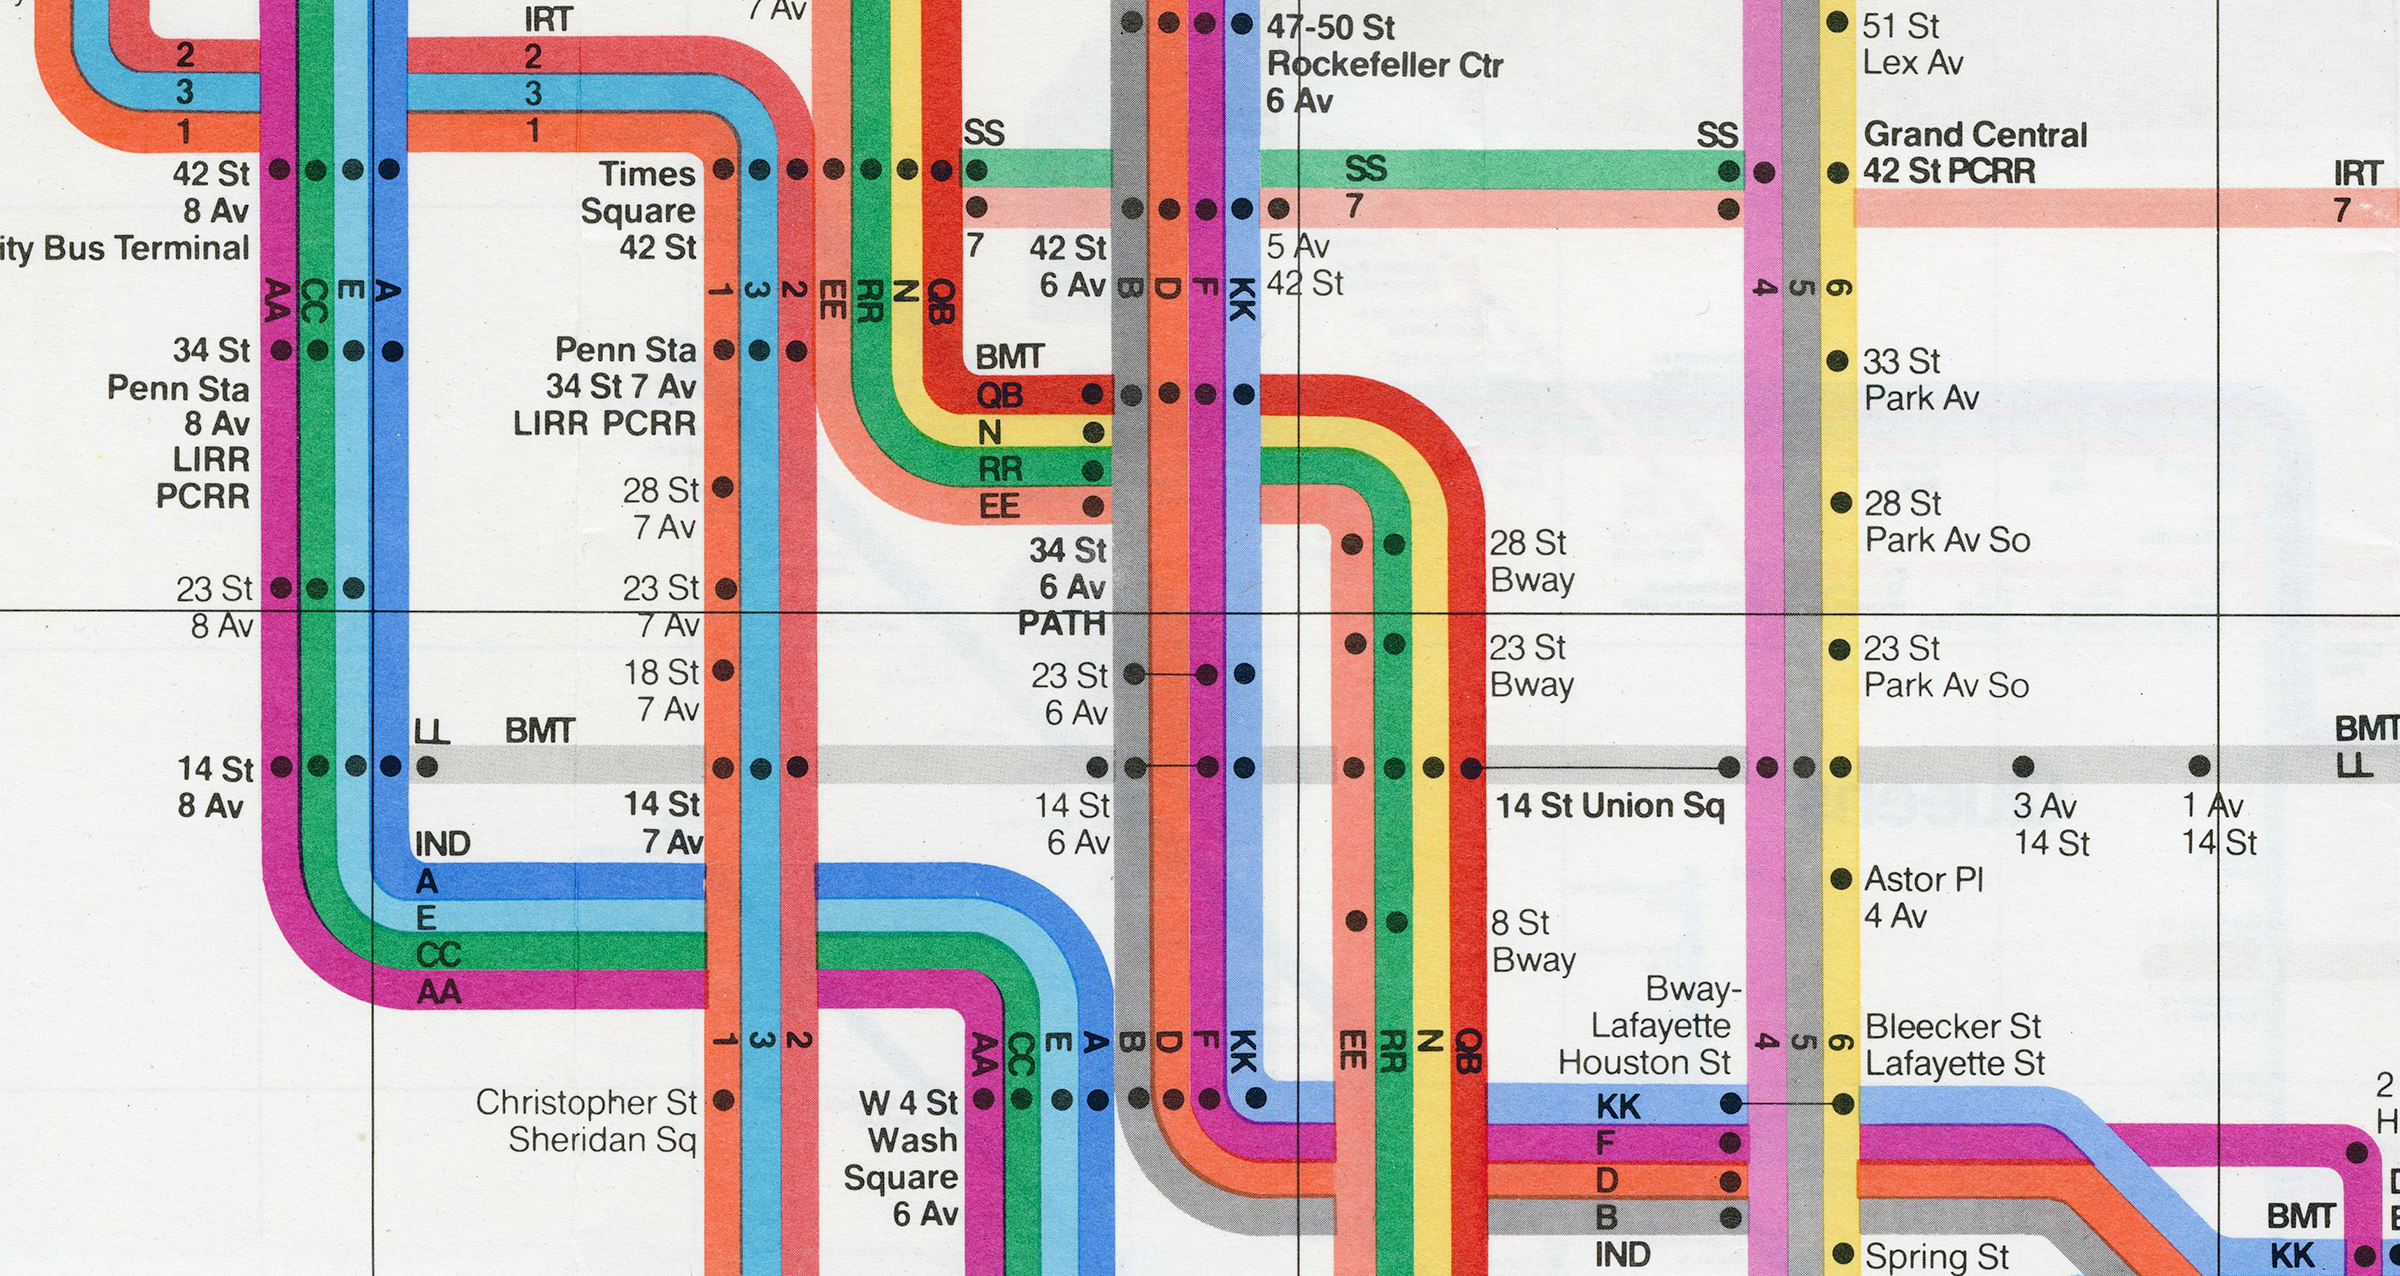 Mta Subway Map In 1990.How Vignelli S Design Still Influences Nyc S Subway Maps Today